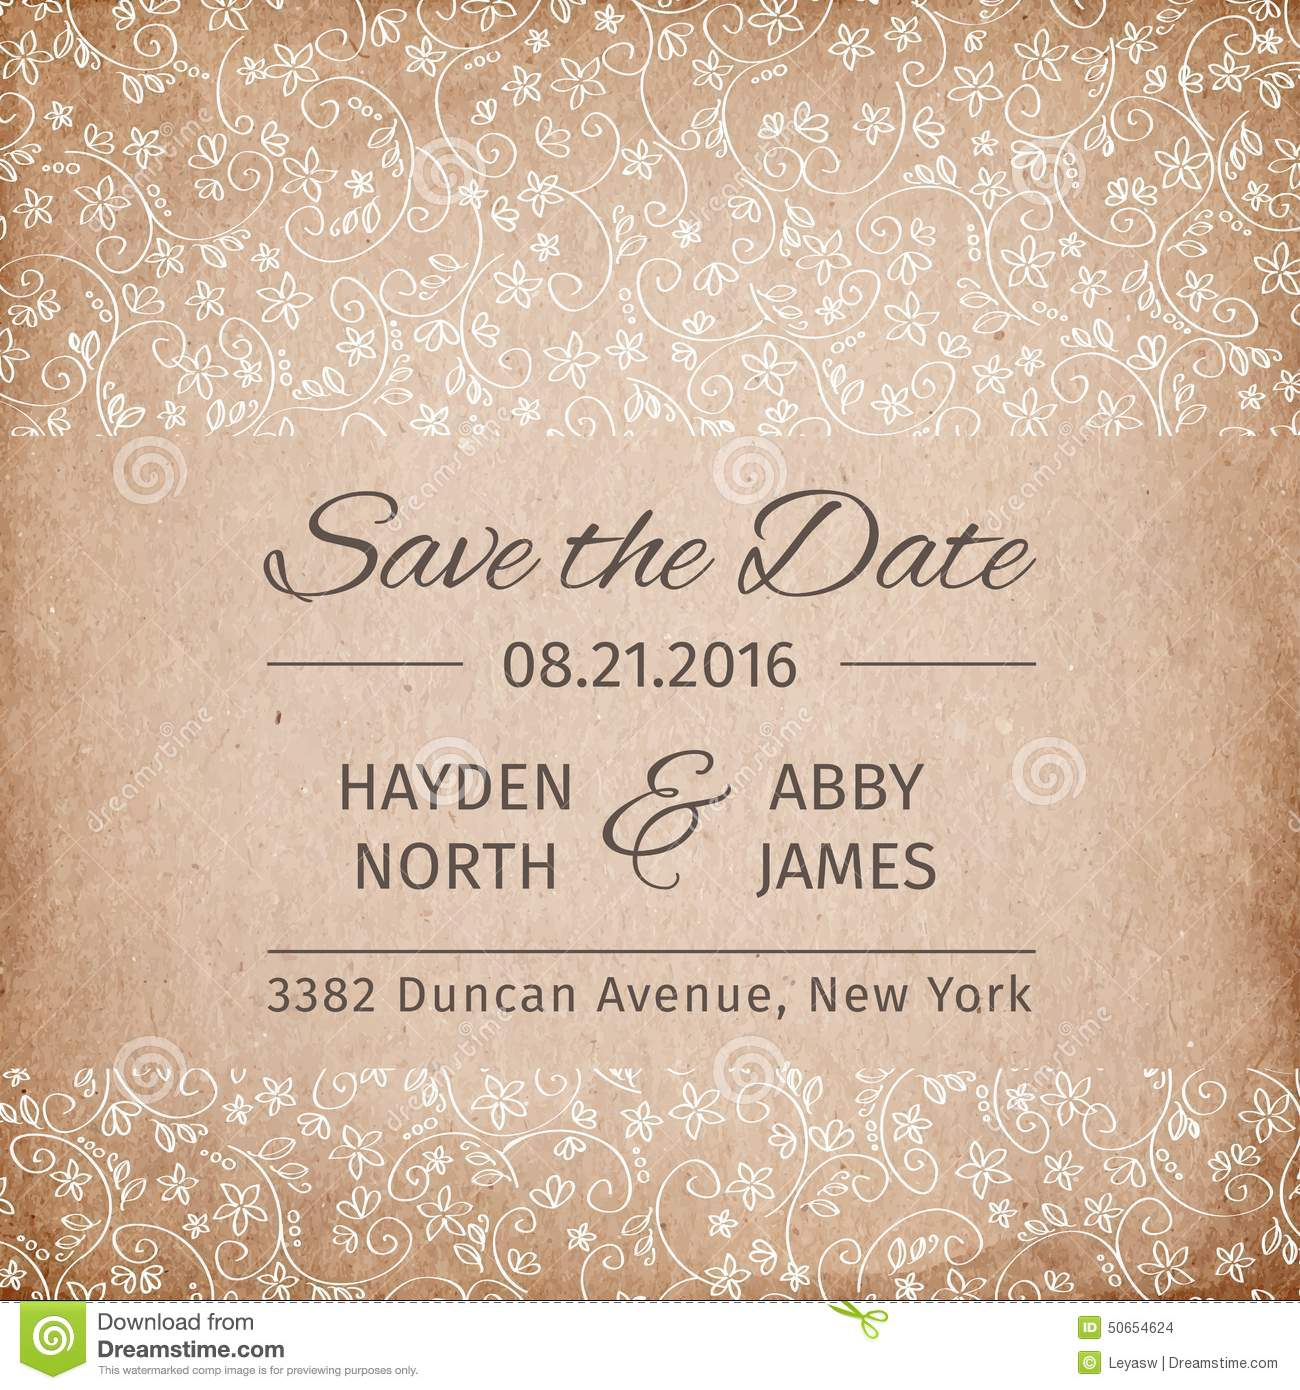 Date Illustration Invitation Paper Save Template Texture Vector Vintage  Wedding ...